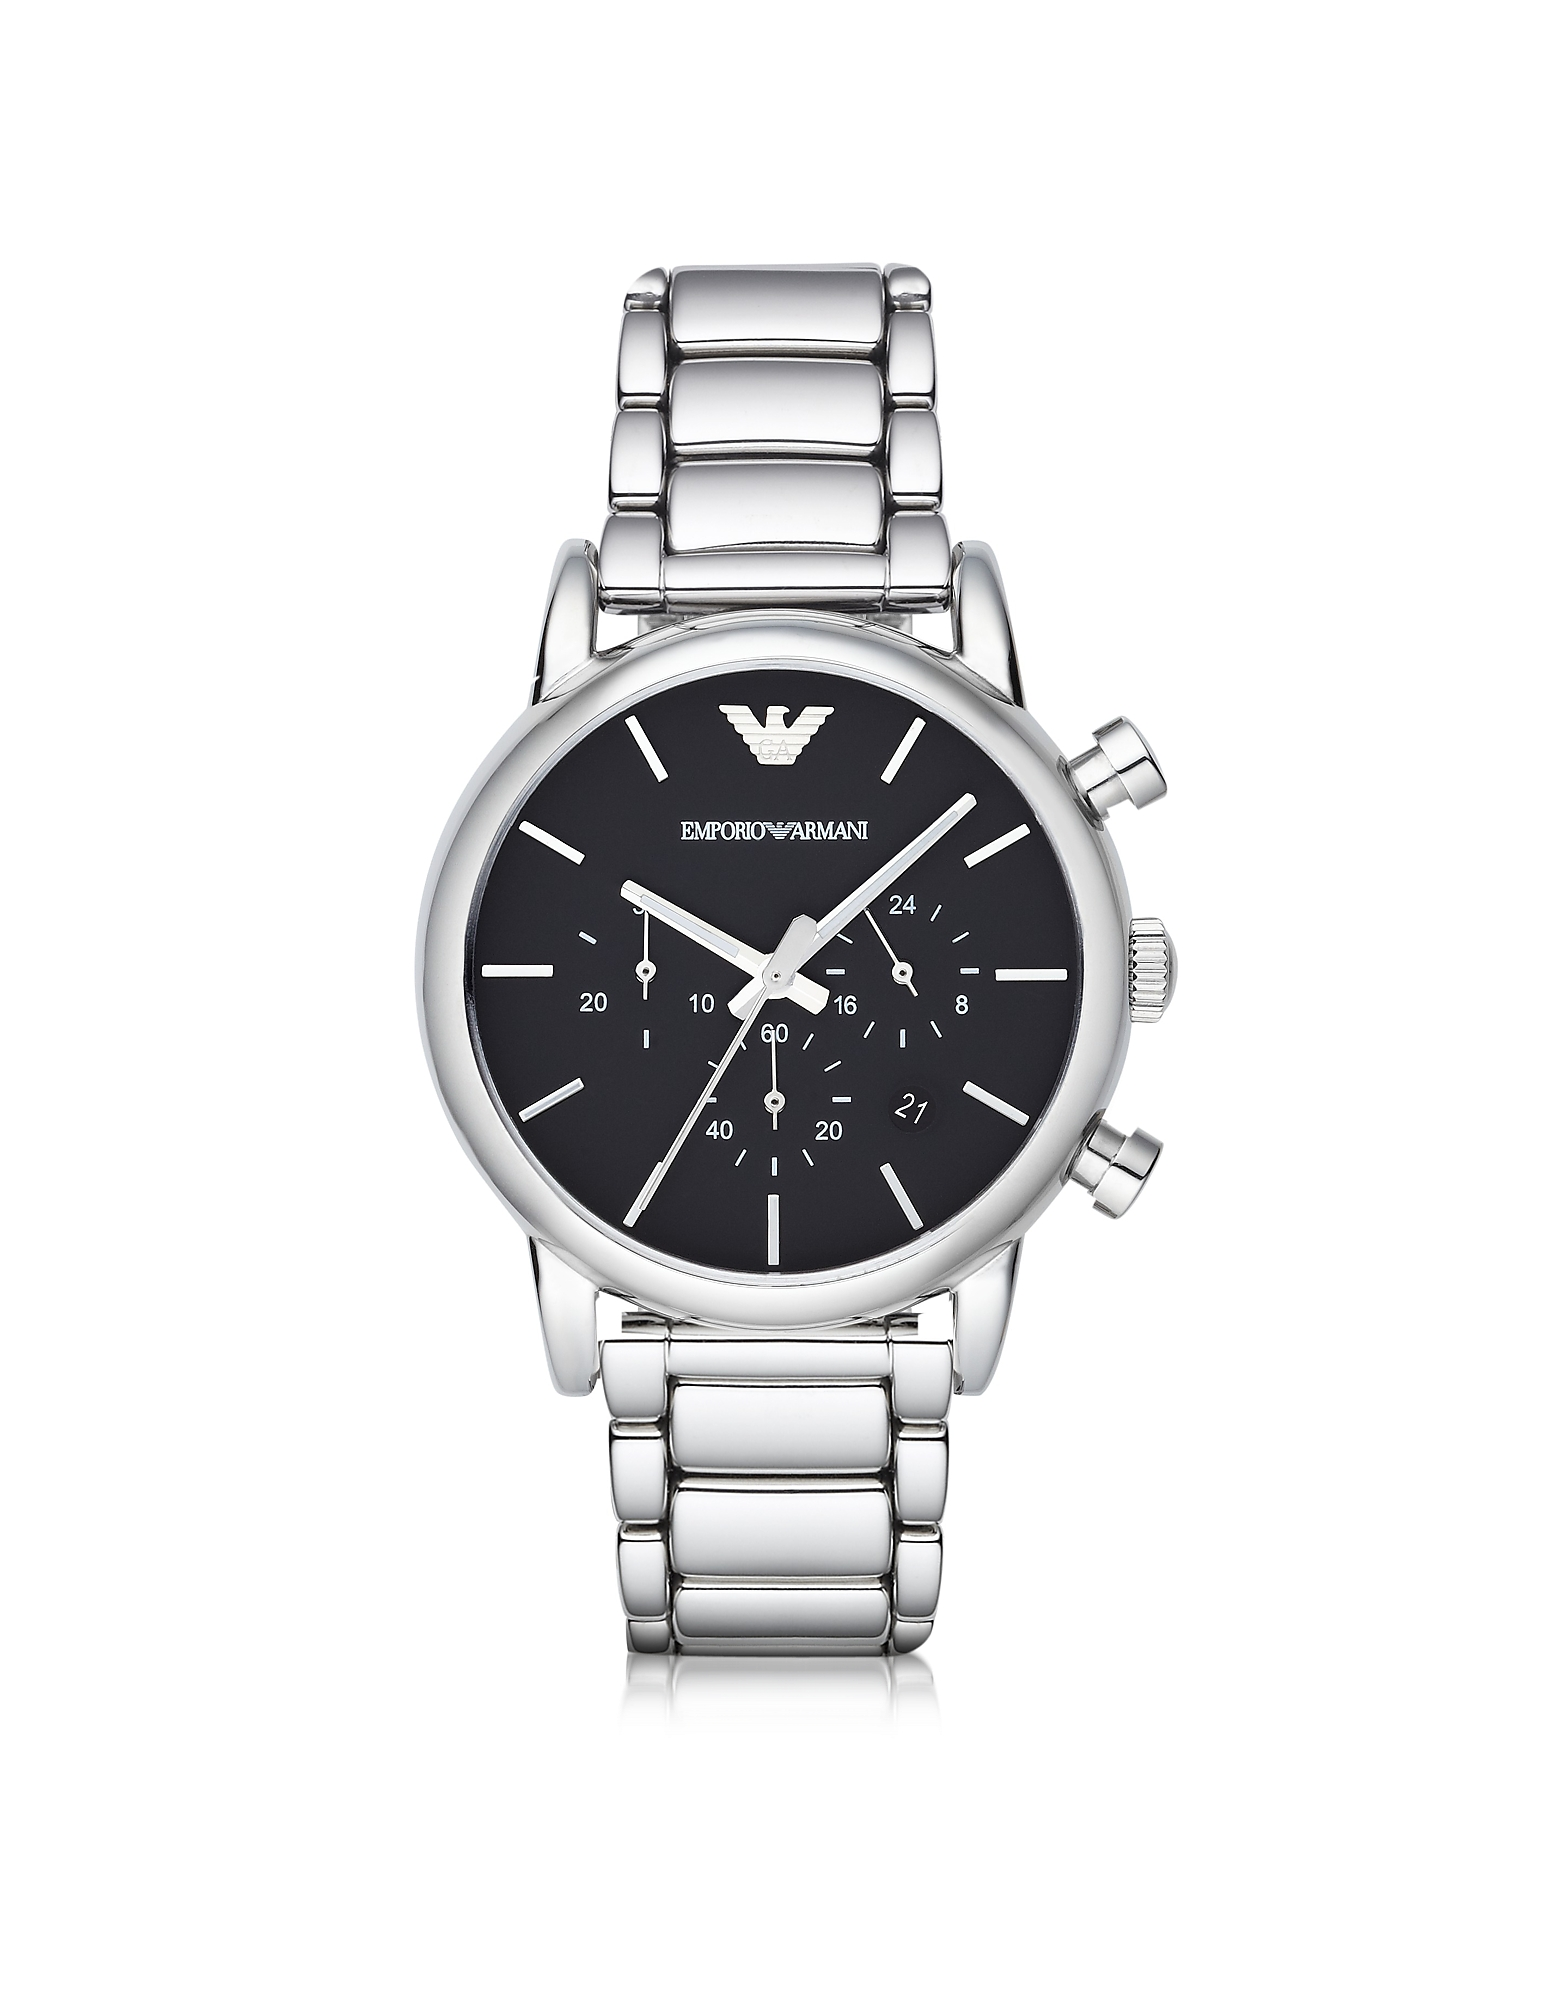 Emporio Armani Men's Watches, Silver Tone Stainless Steel Men's Watch